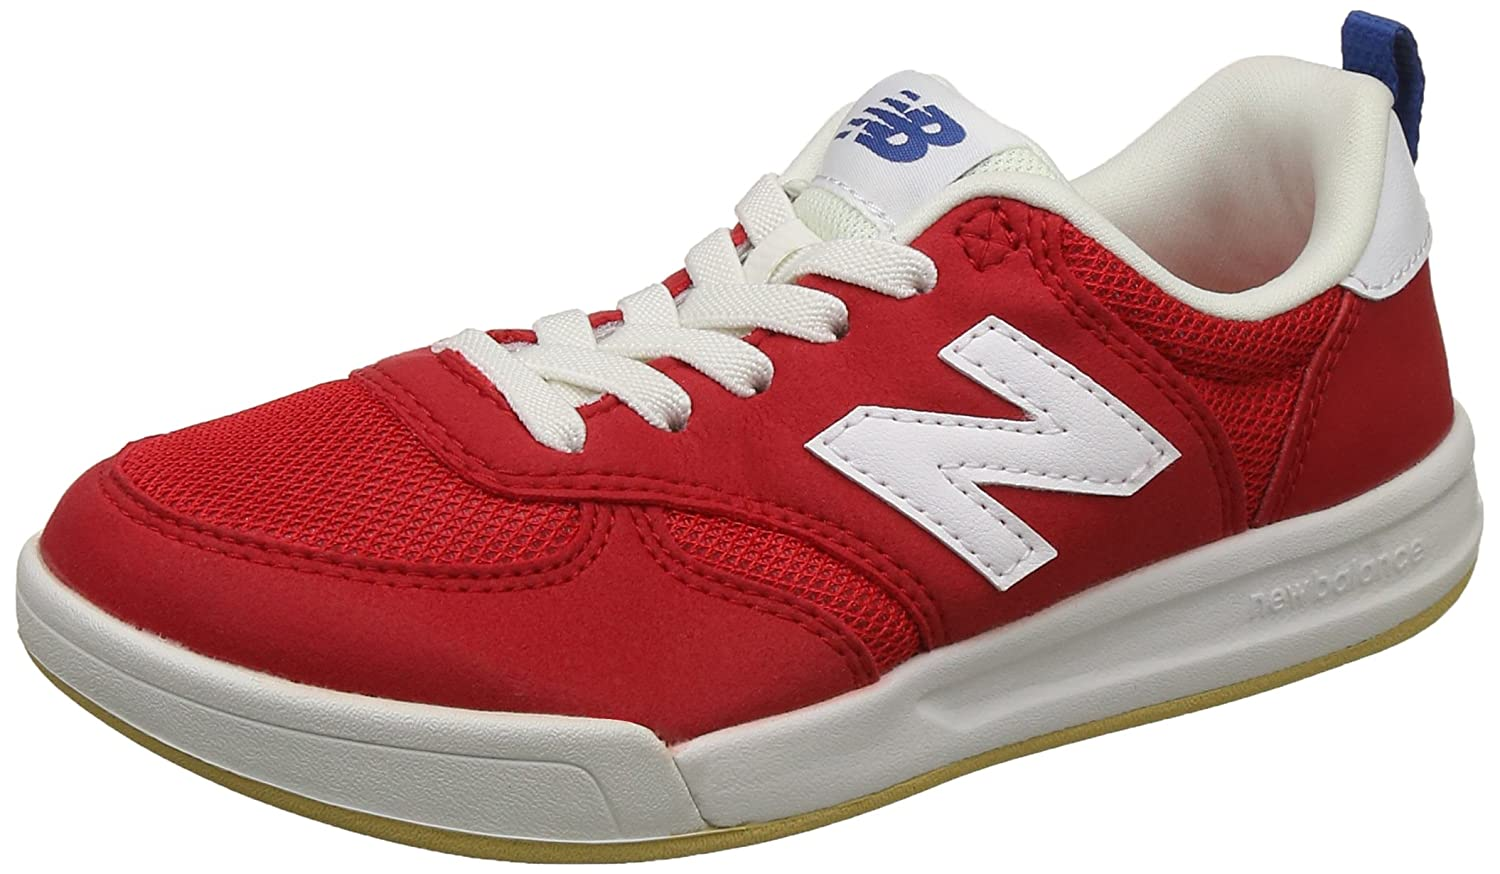 ddc5c7287bf9d new balance Boy's 300 Sports Shoes: Buy Online at Low Prices in India -  Amazon.in